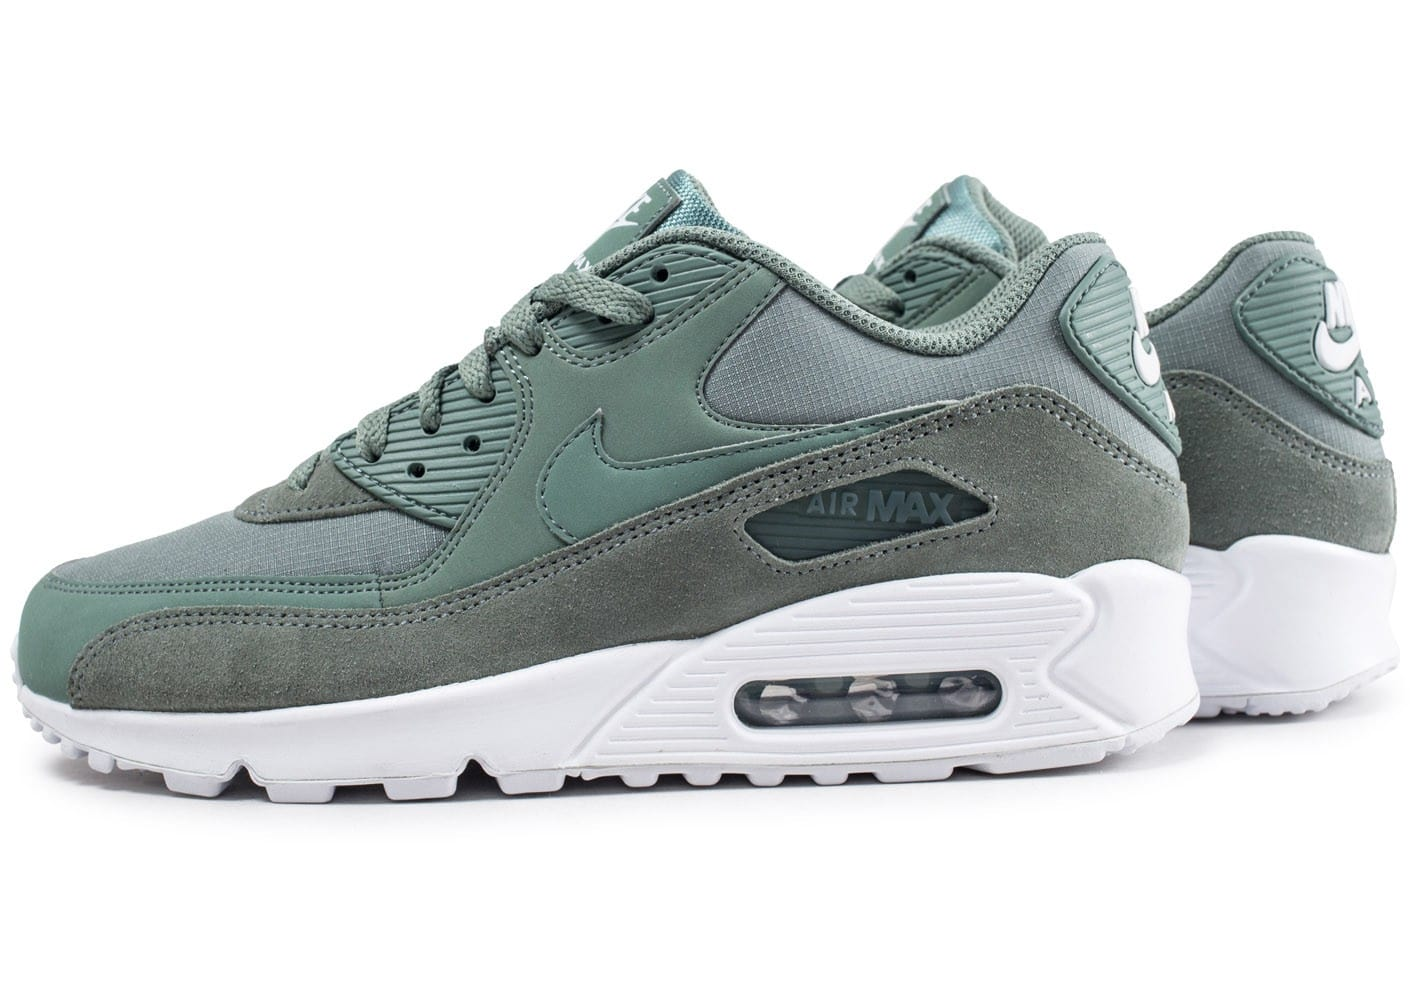 super populaire ed2f0 75319 Nike Air Max 90 Essential vert - Chaussures Baskets homme ...